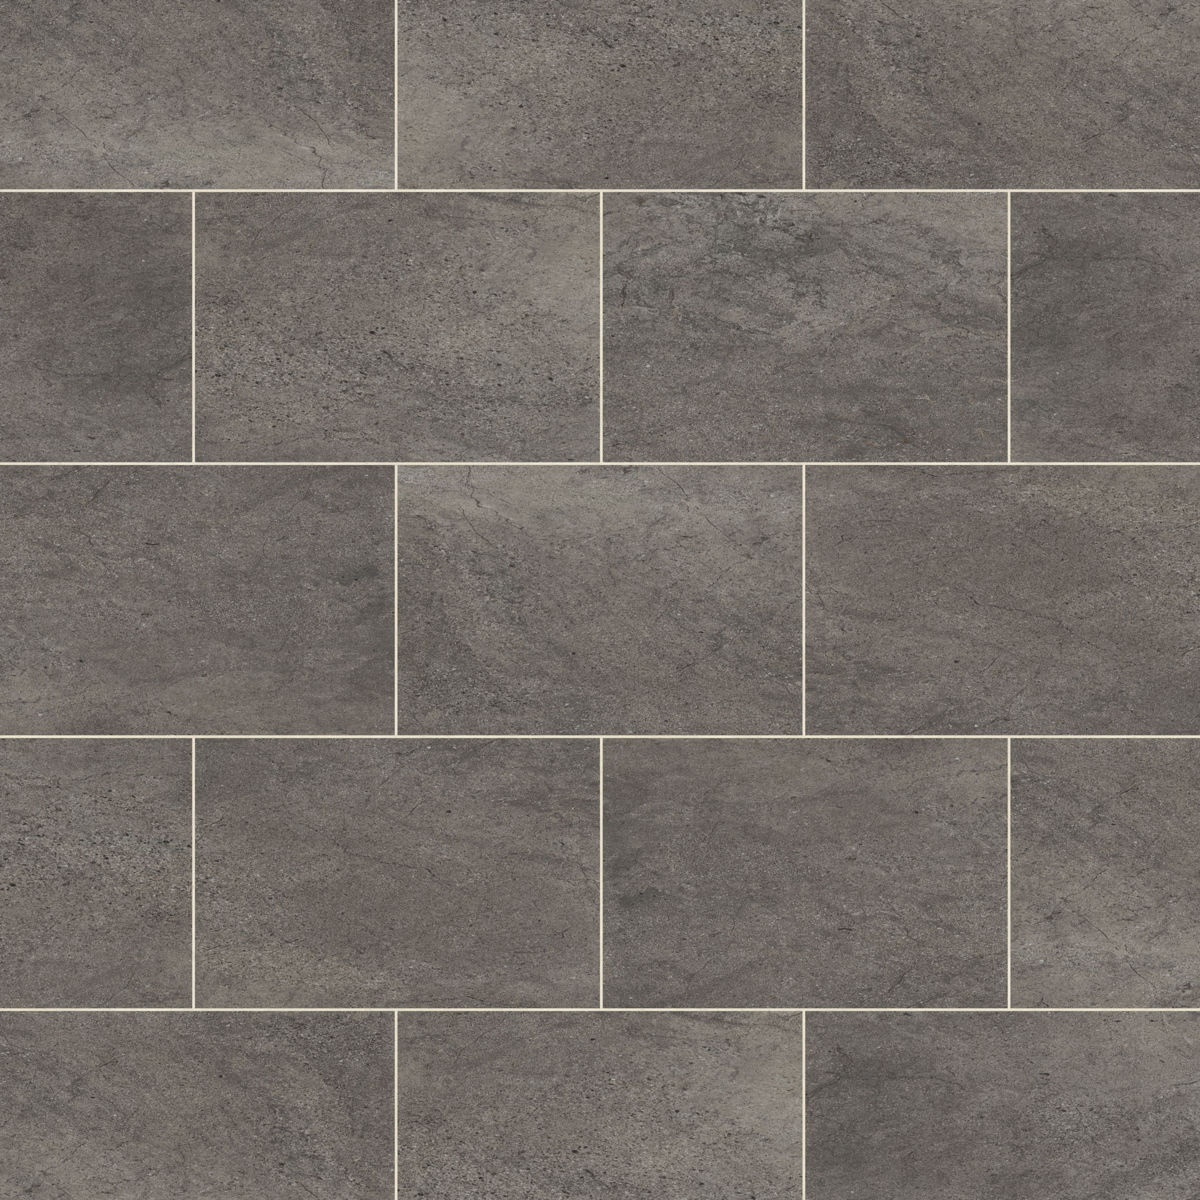 Karndean knight tile cumbrian stone for Floor tiles images